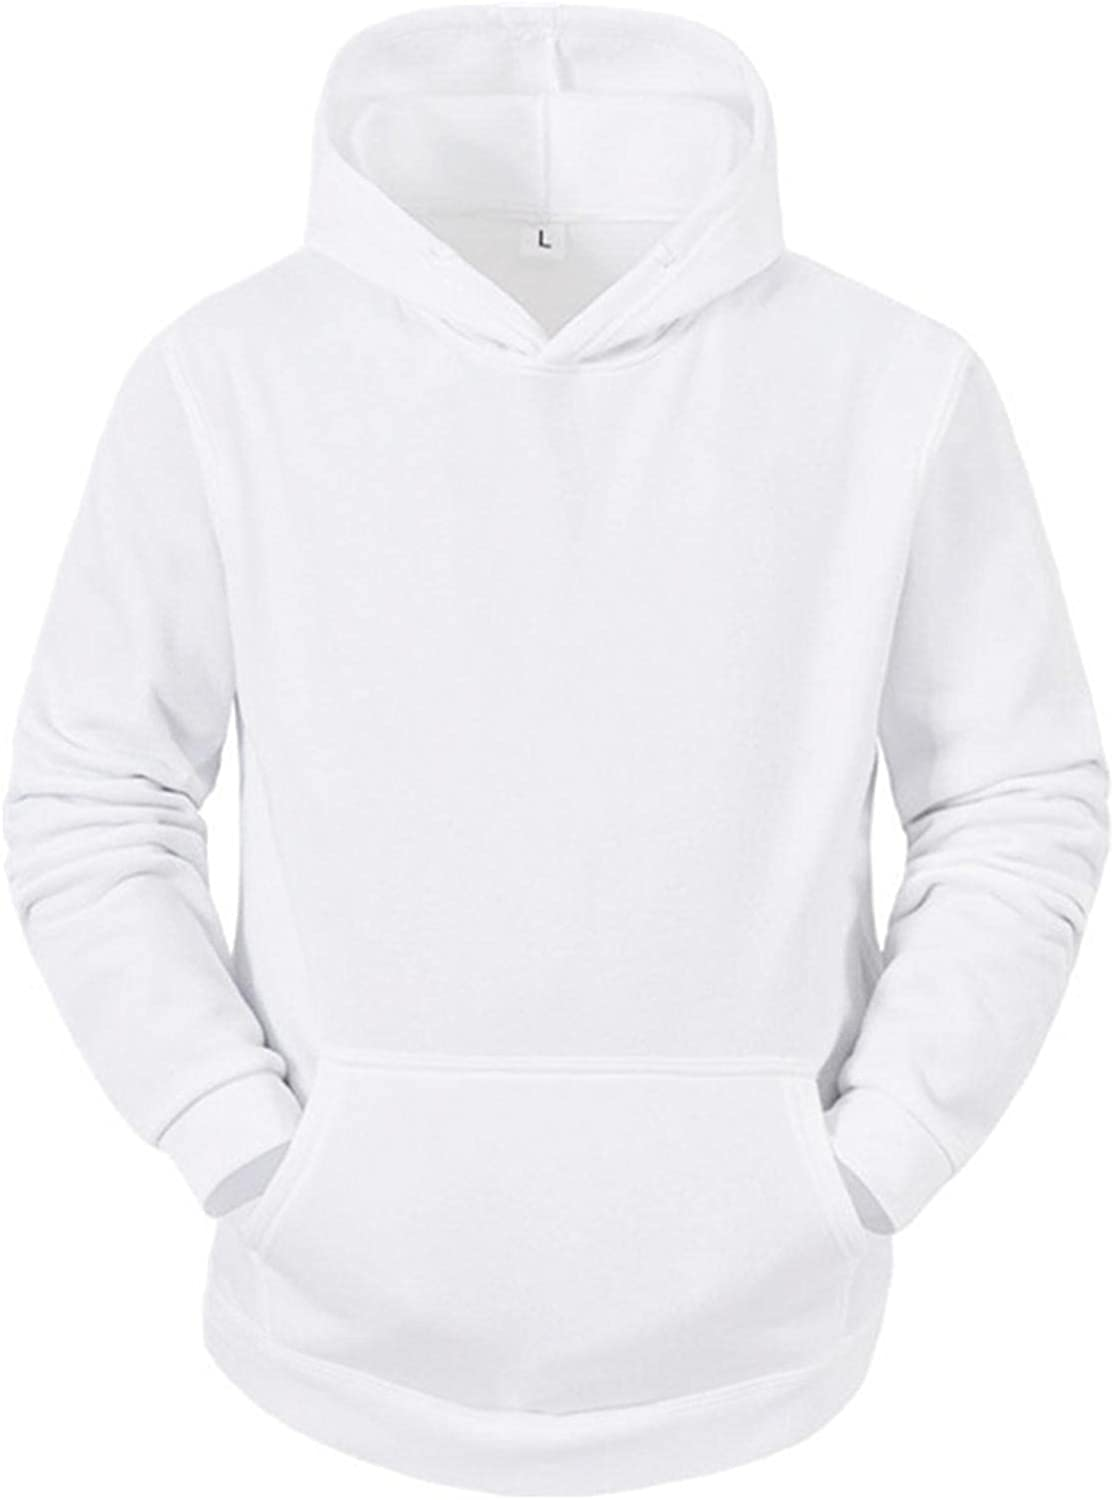 Men's Hoodie Solid Color Athletic Sweatshirt Long Sleeve Drawstring Pullover Tops Jacket Gym Hooded Outwear with Pockets